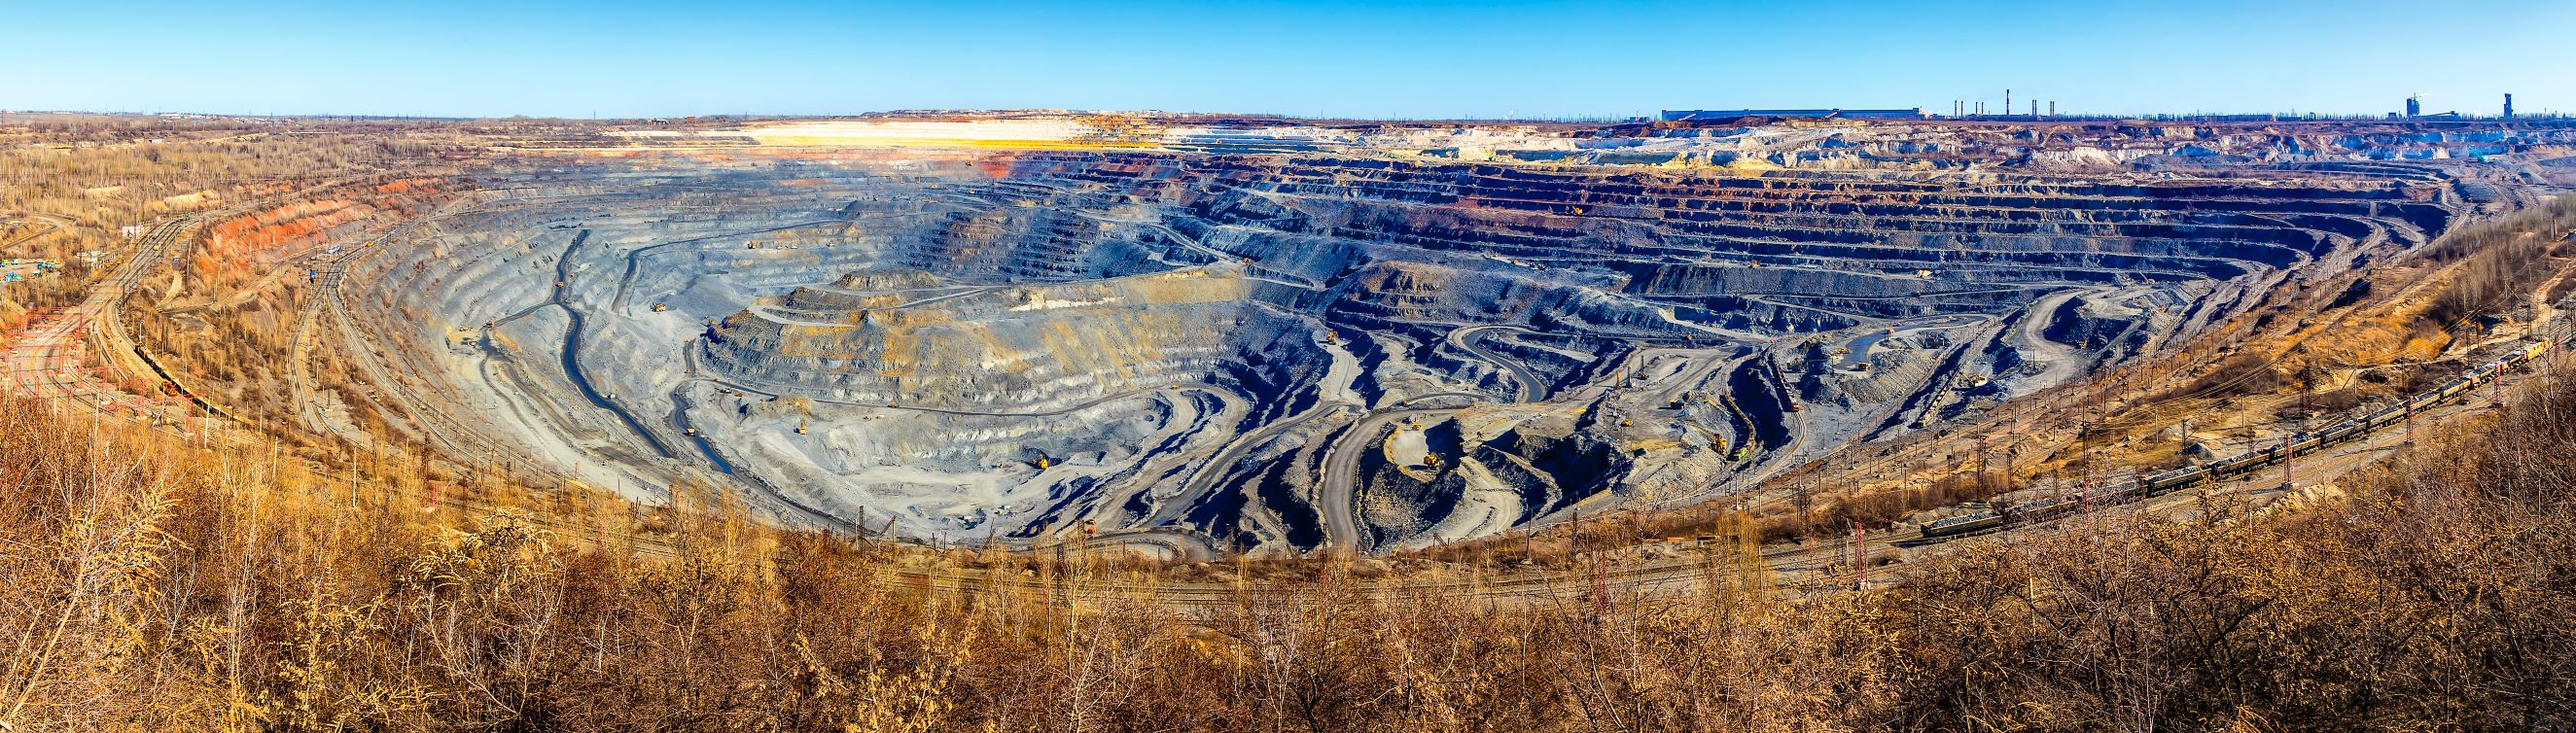 World's largest open pit iron ore mine near the town of Gubkin, Russia  T Door Timofeev Vladimir